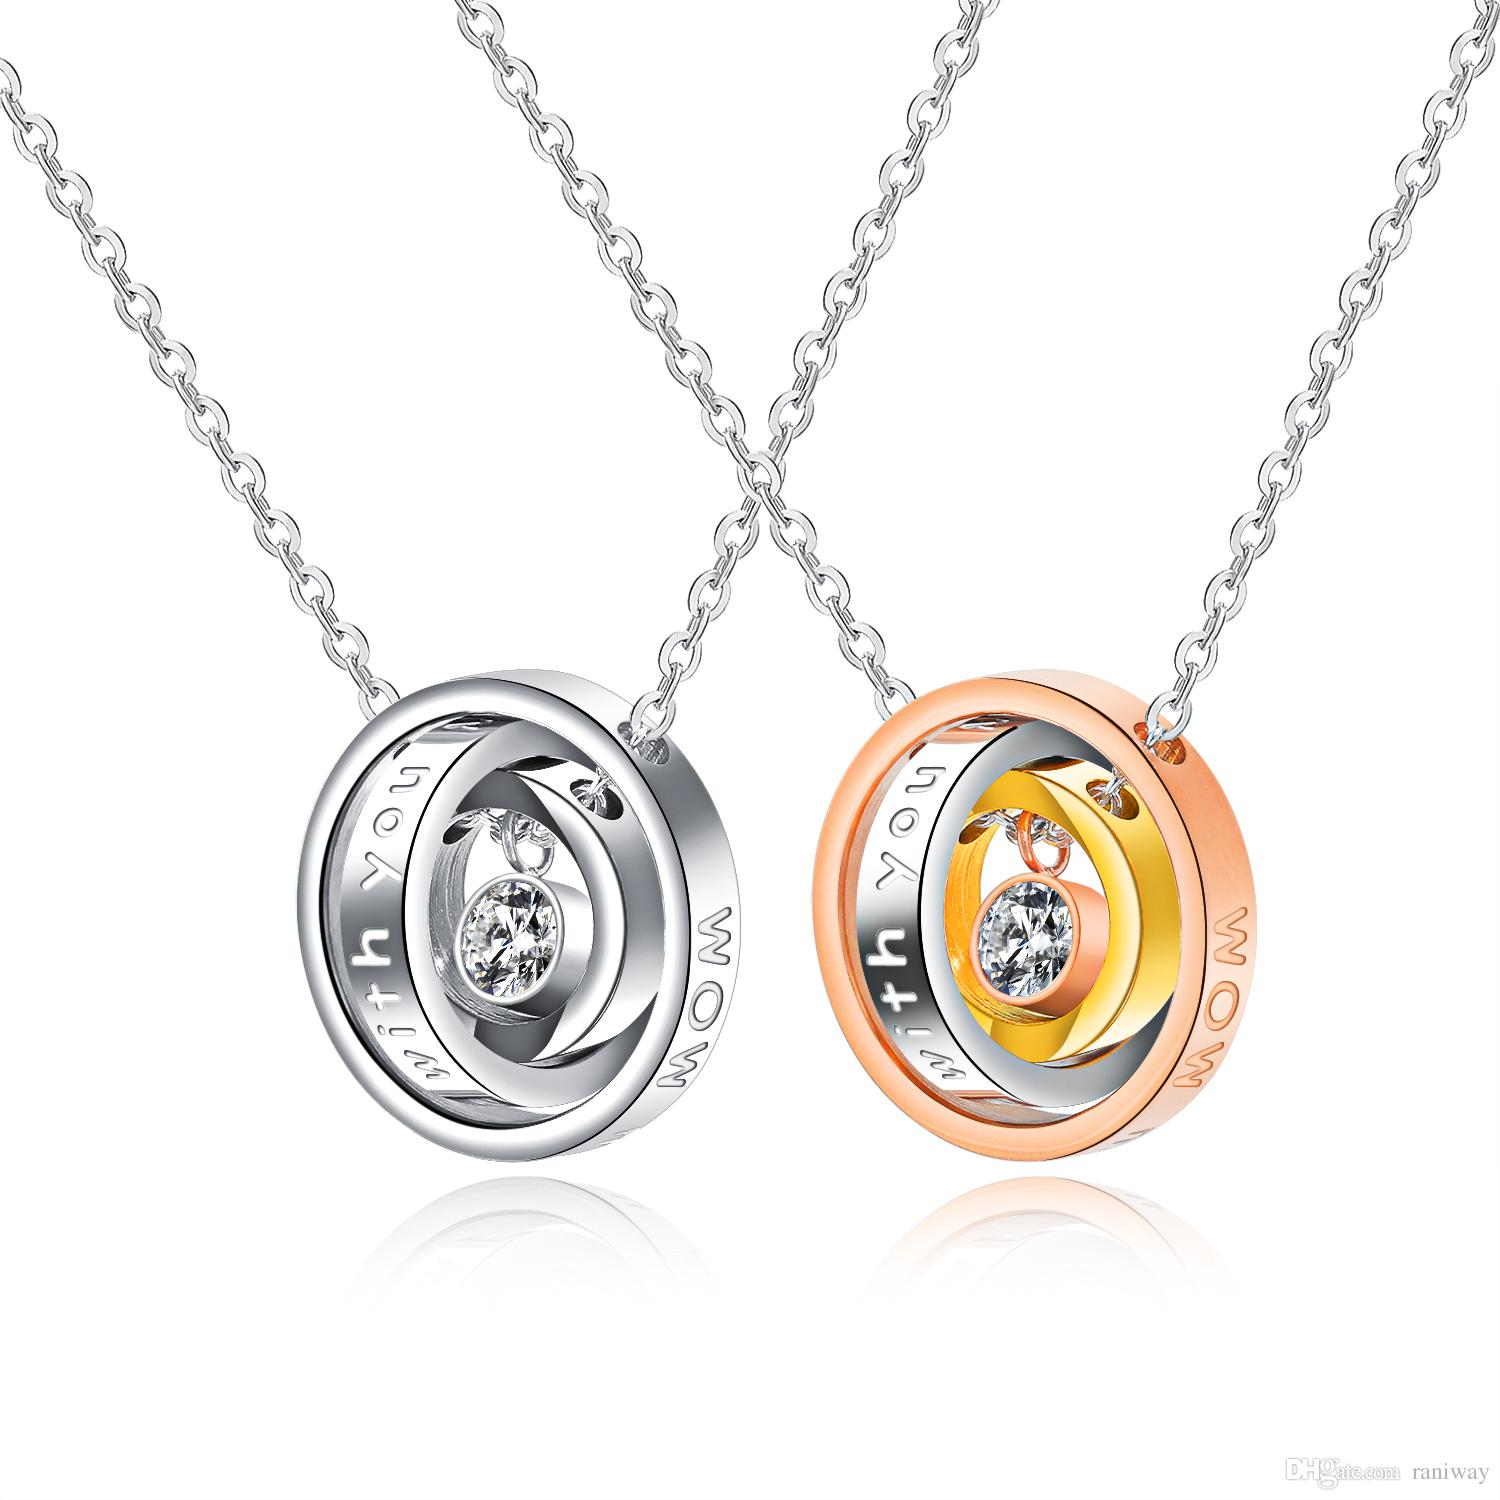 b0b18688e3 Romantic Mens Women His and Her Necklace Muilty Ring Message Engraved Stainless  Steel Matching Couple Necklace Pendant Set Valentine's Gifts